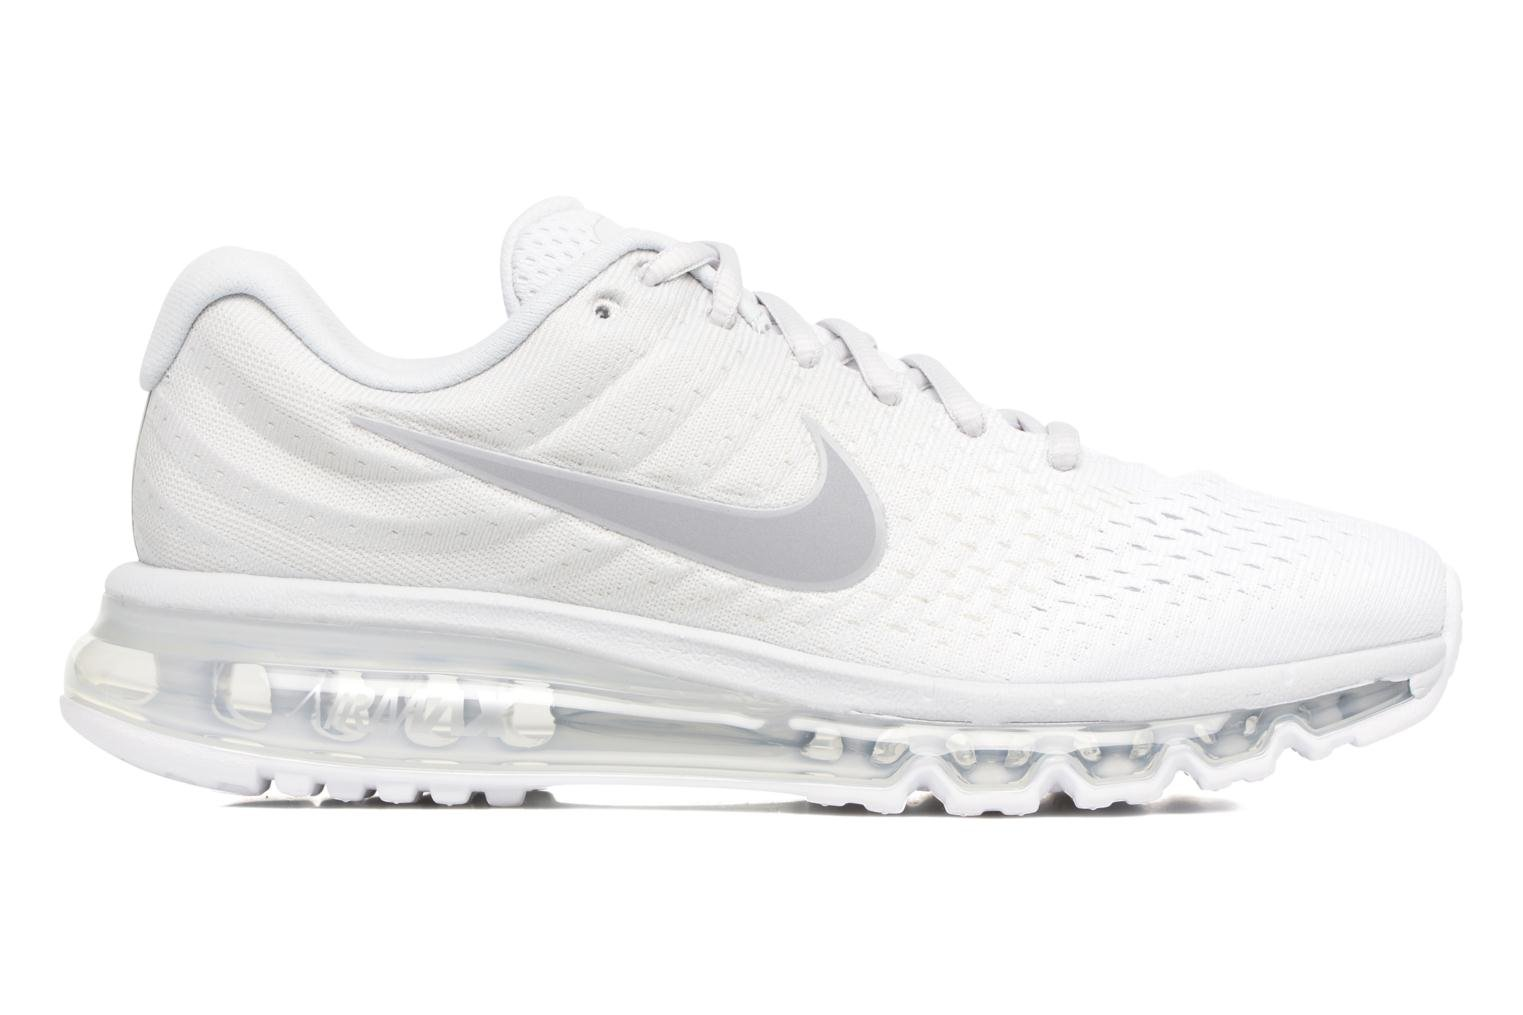 Nike Air Max 2017 PURE PLATINUM/WOLF GREY-WHITE-OFF WHITE